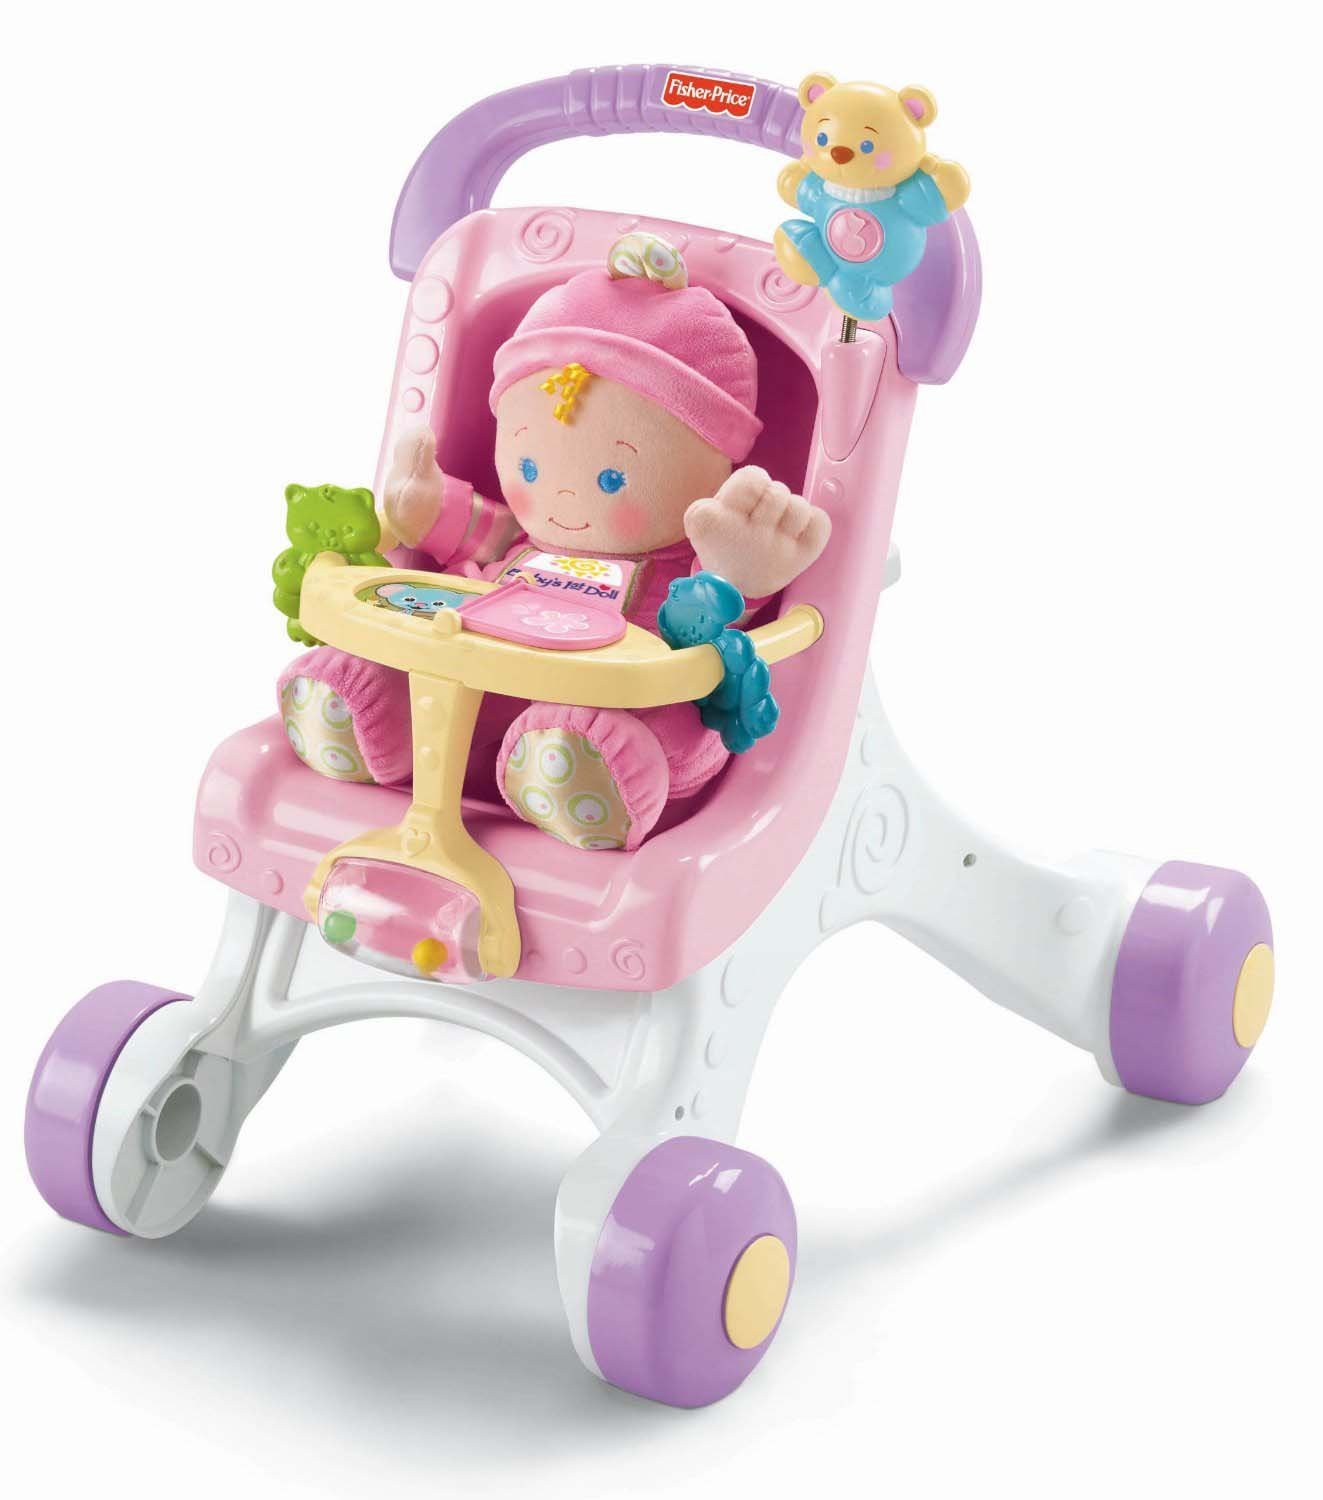 Baby Boy Toys Walmart : Toys for year old girl birthday christmas gifts